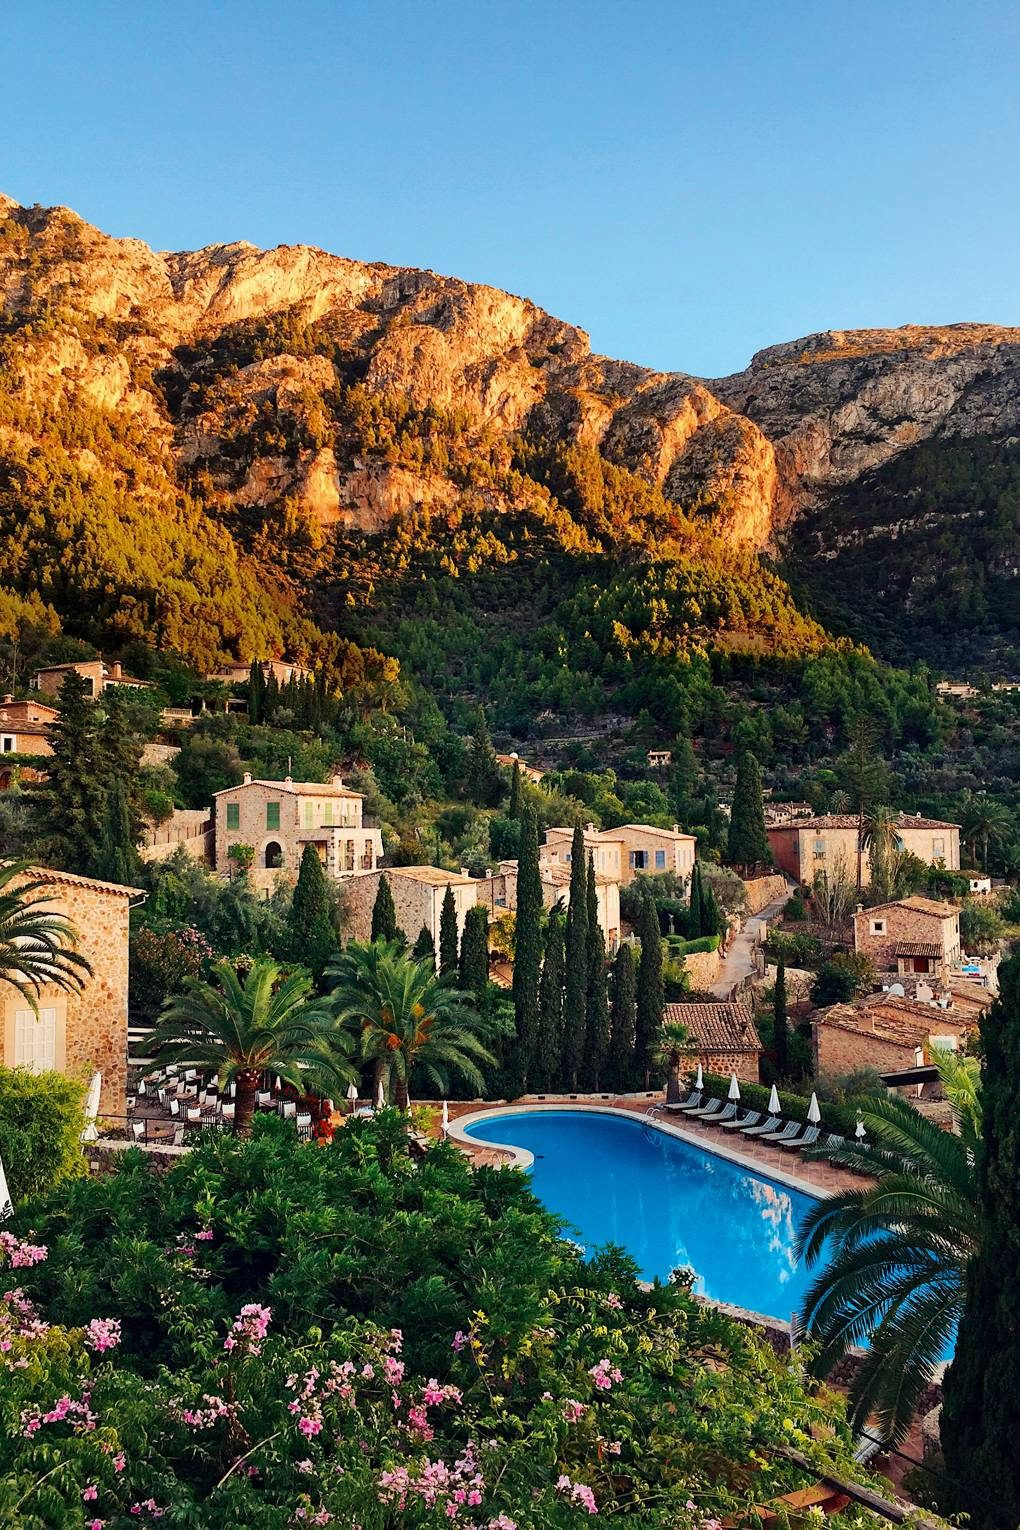 Enjoy an incredible stay in #Mallorca with our edit of the best hotels on the Balearic island in #Spain